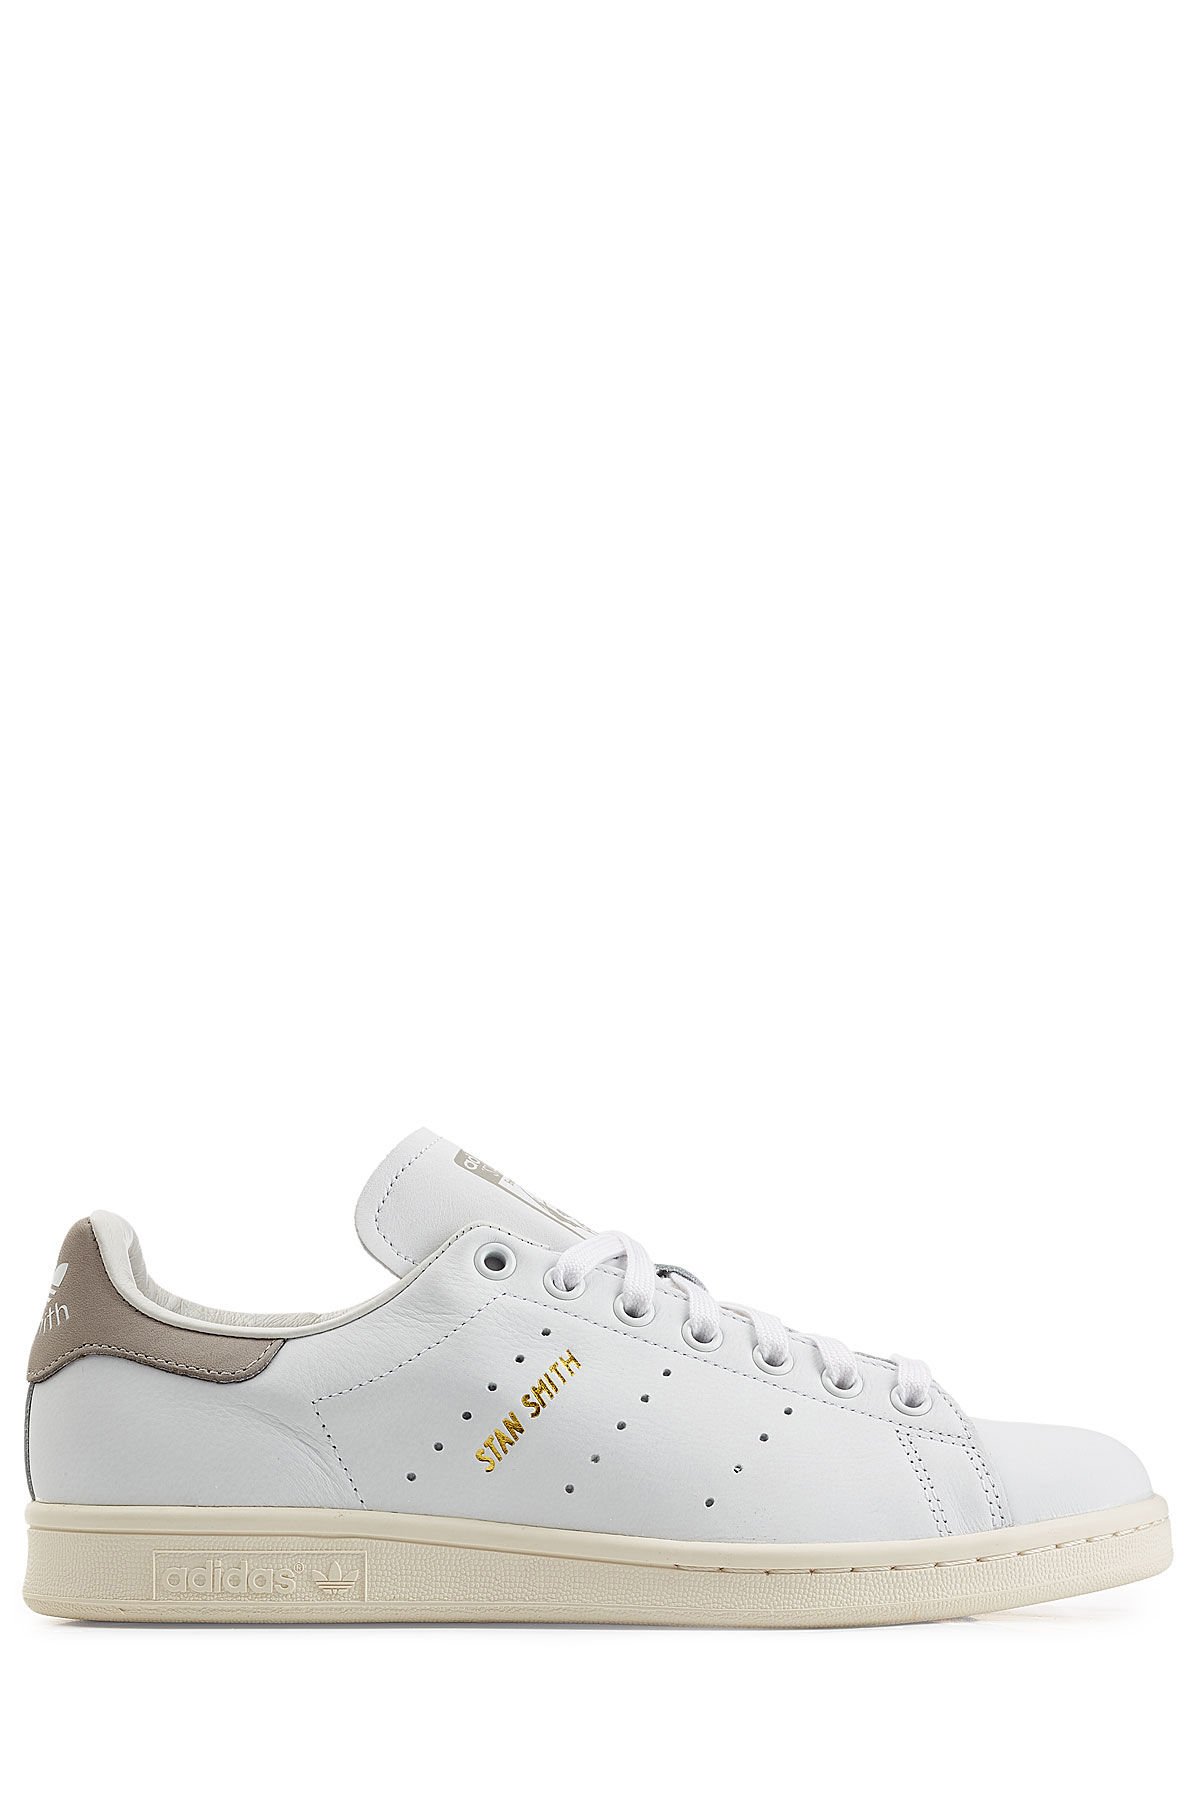 adidas originals stan smith leather sneakers white in. Black Bedroom Furniture Sets. Home Design Ideas